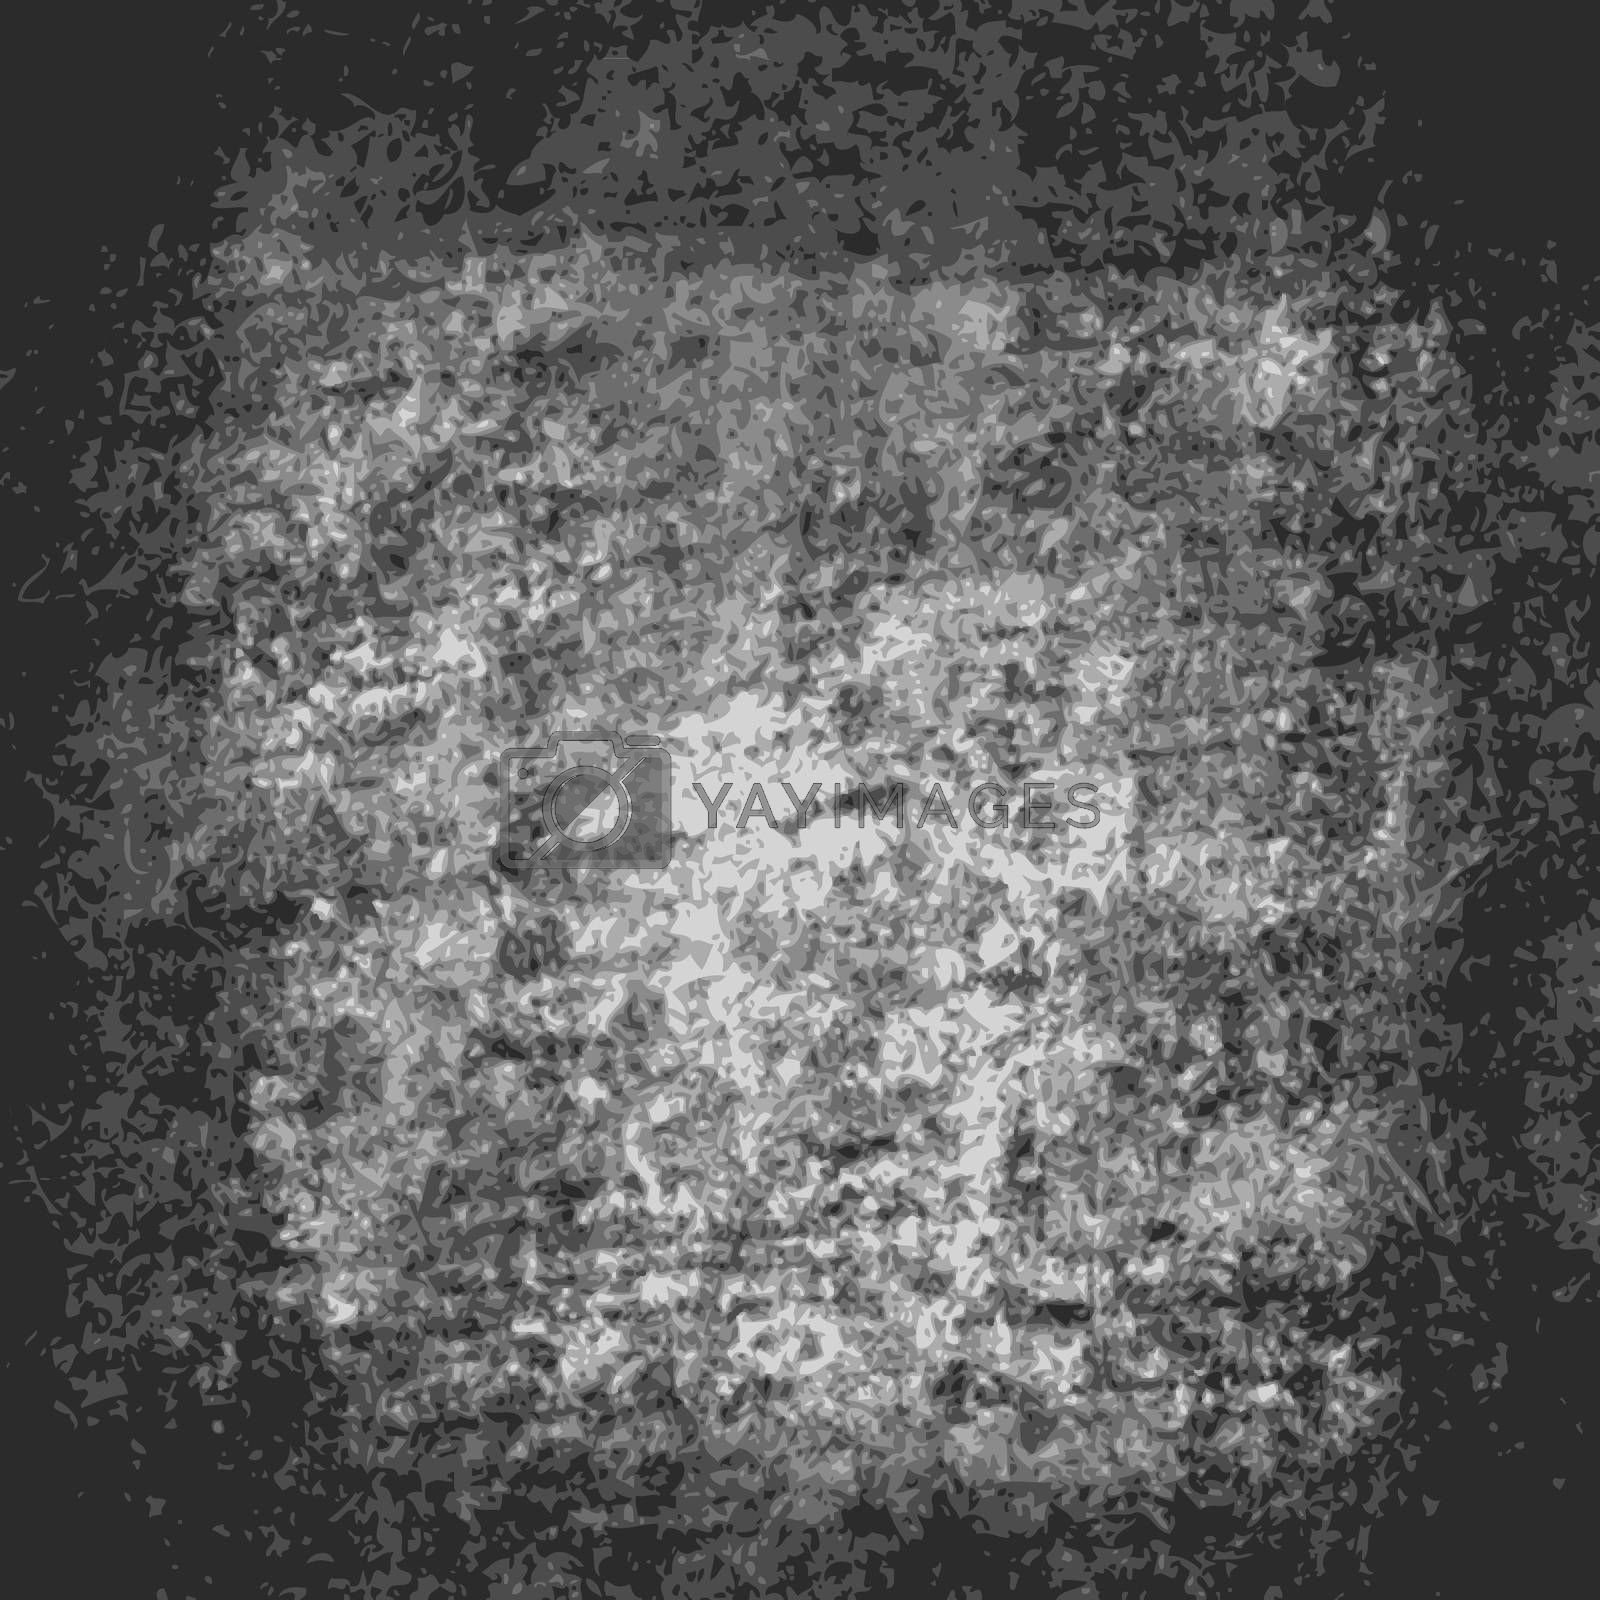 Royalty free image of abstract square by simpleBE